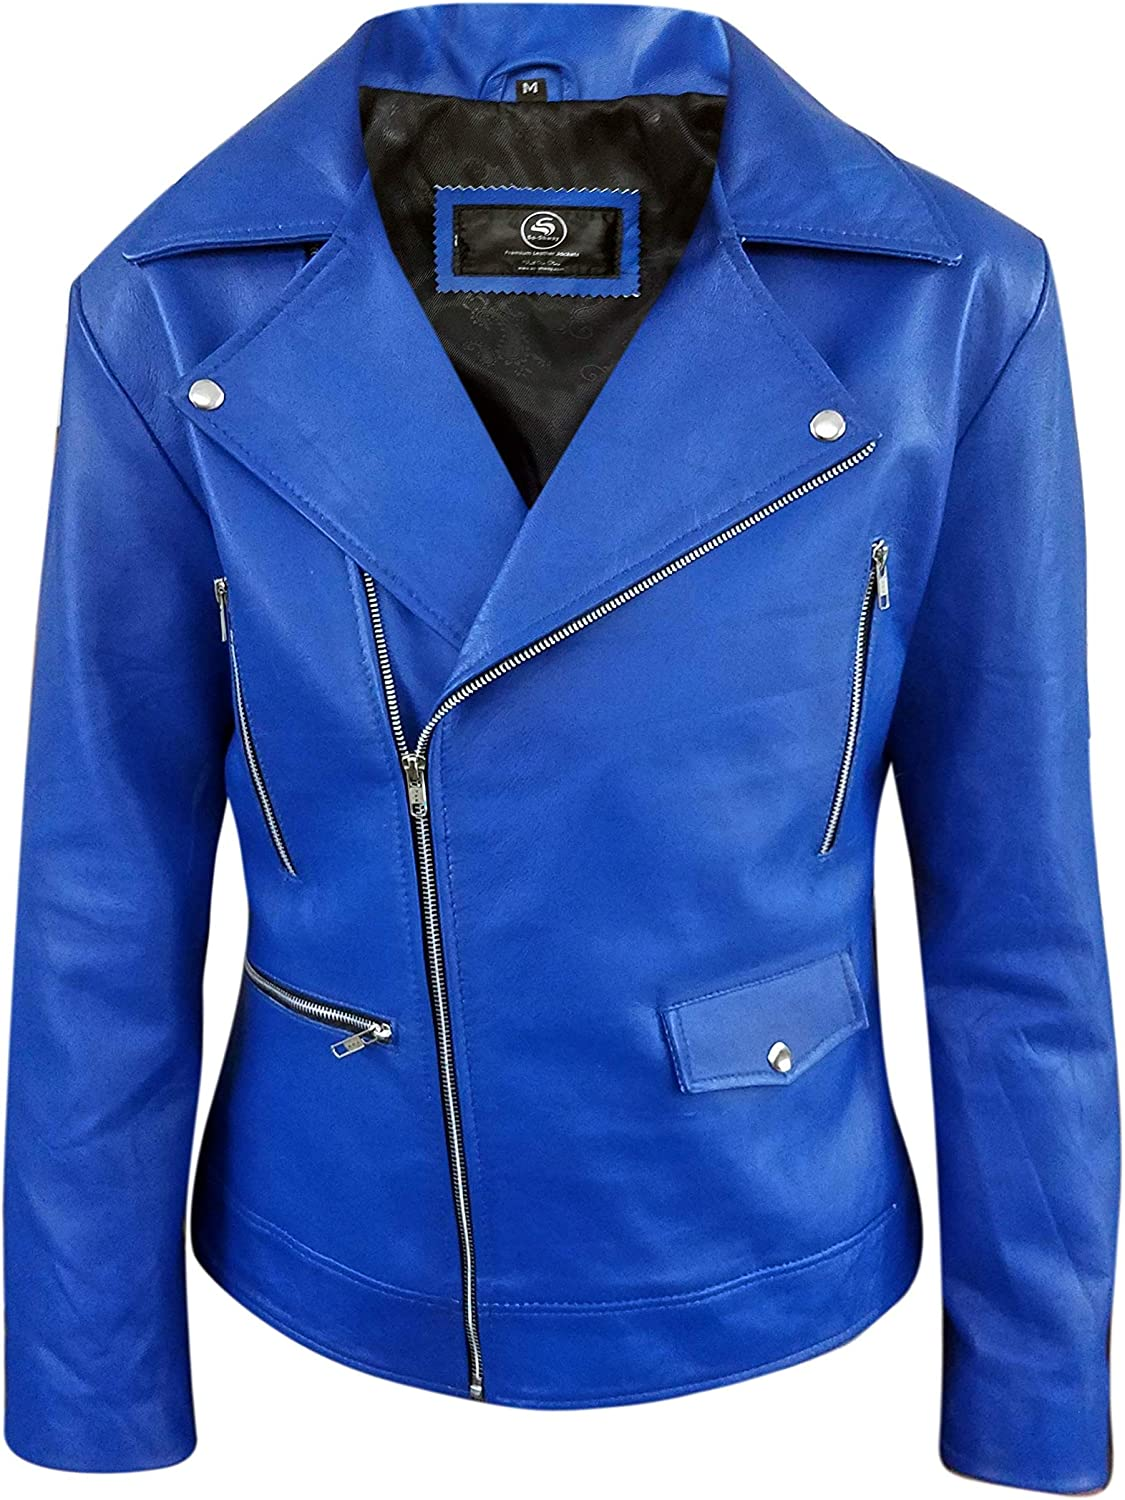 Mens Blue Leather Jacket Biker Classic Motorbike Motorcycle Vintage Perfect Leather Jacket